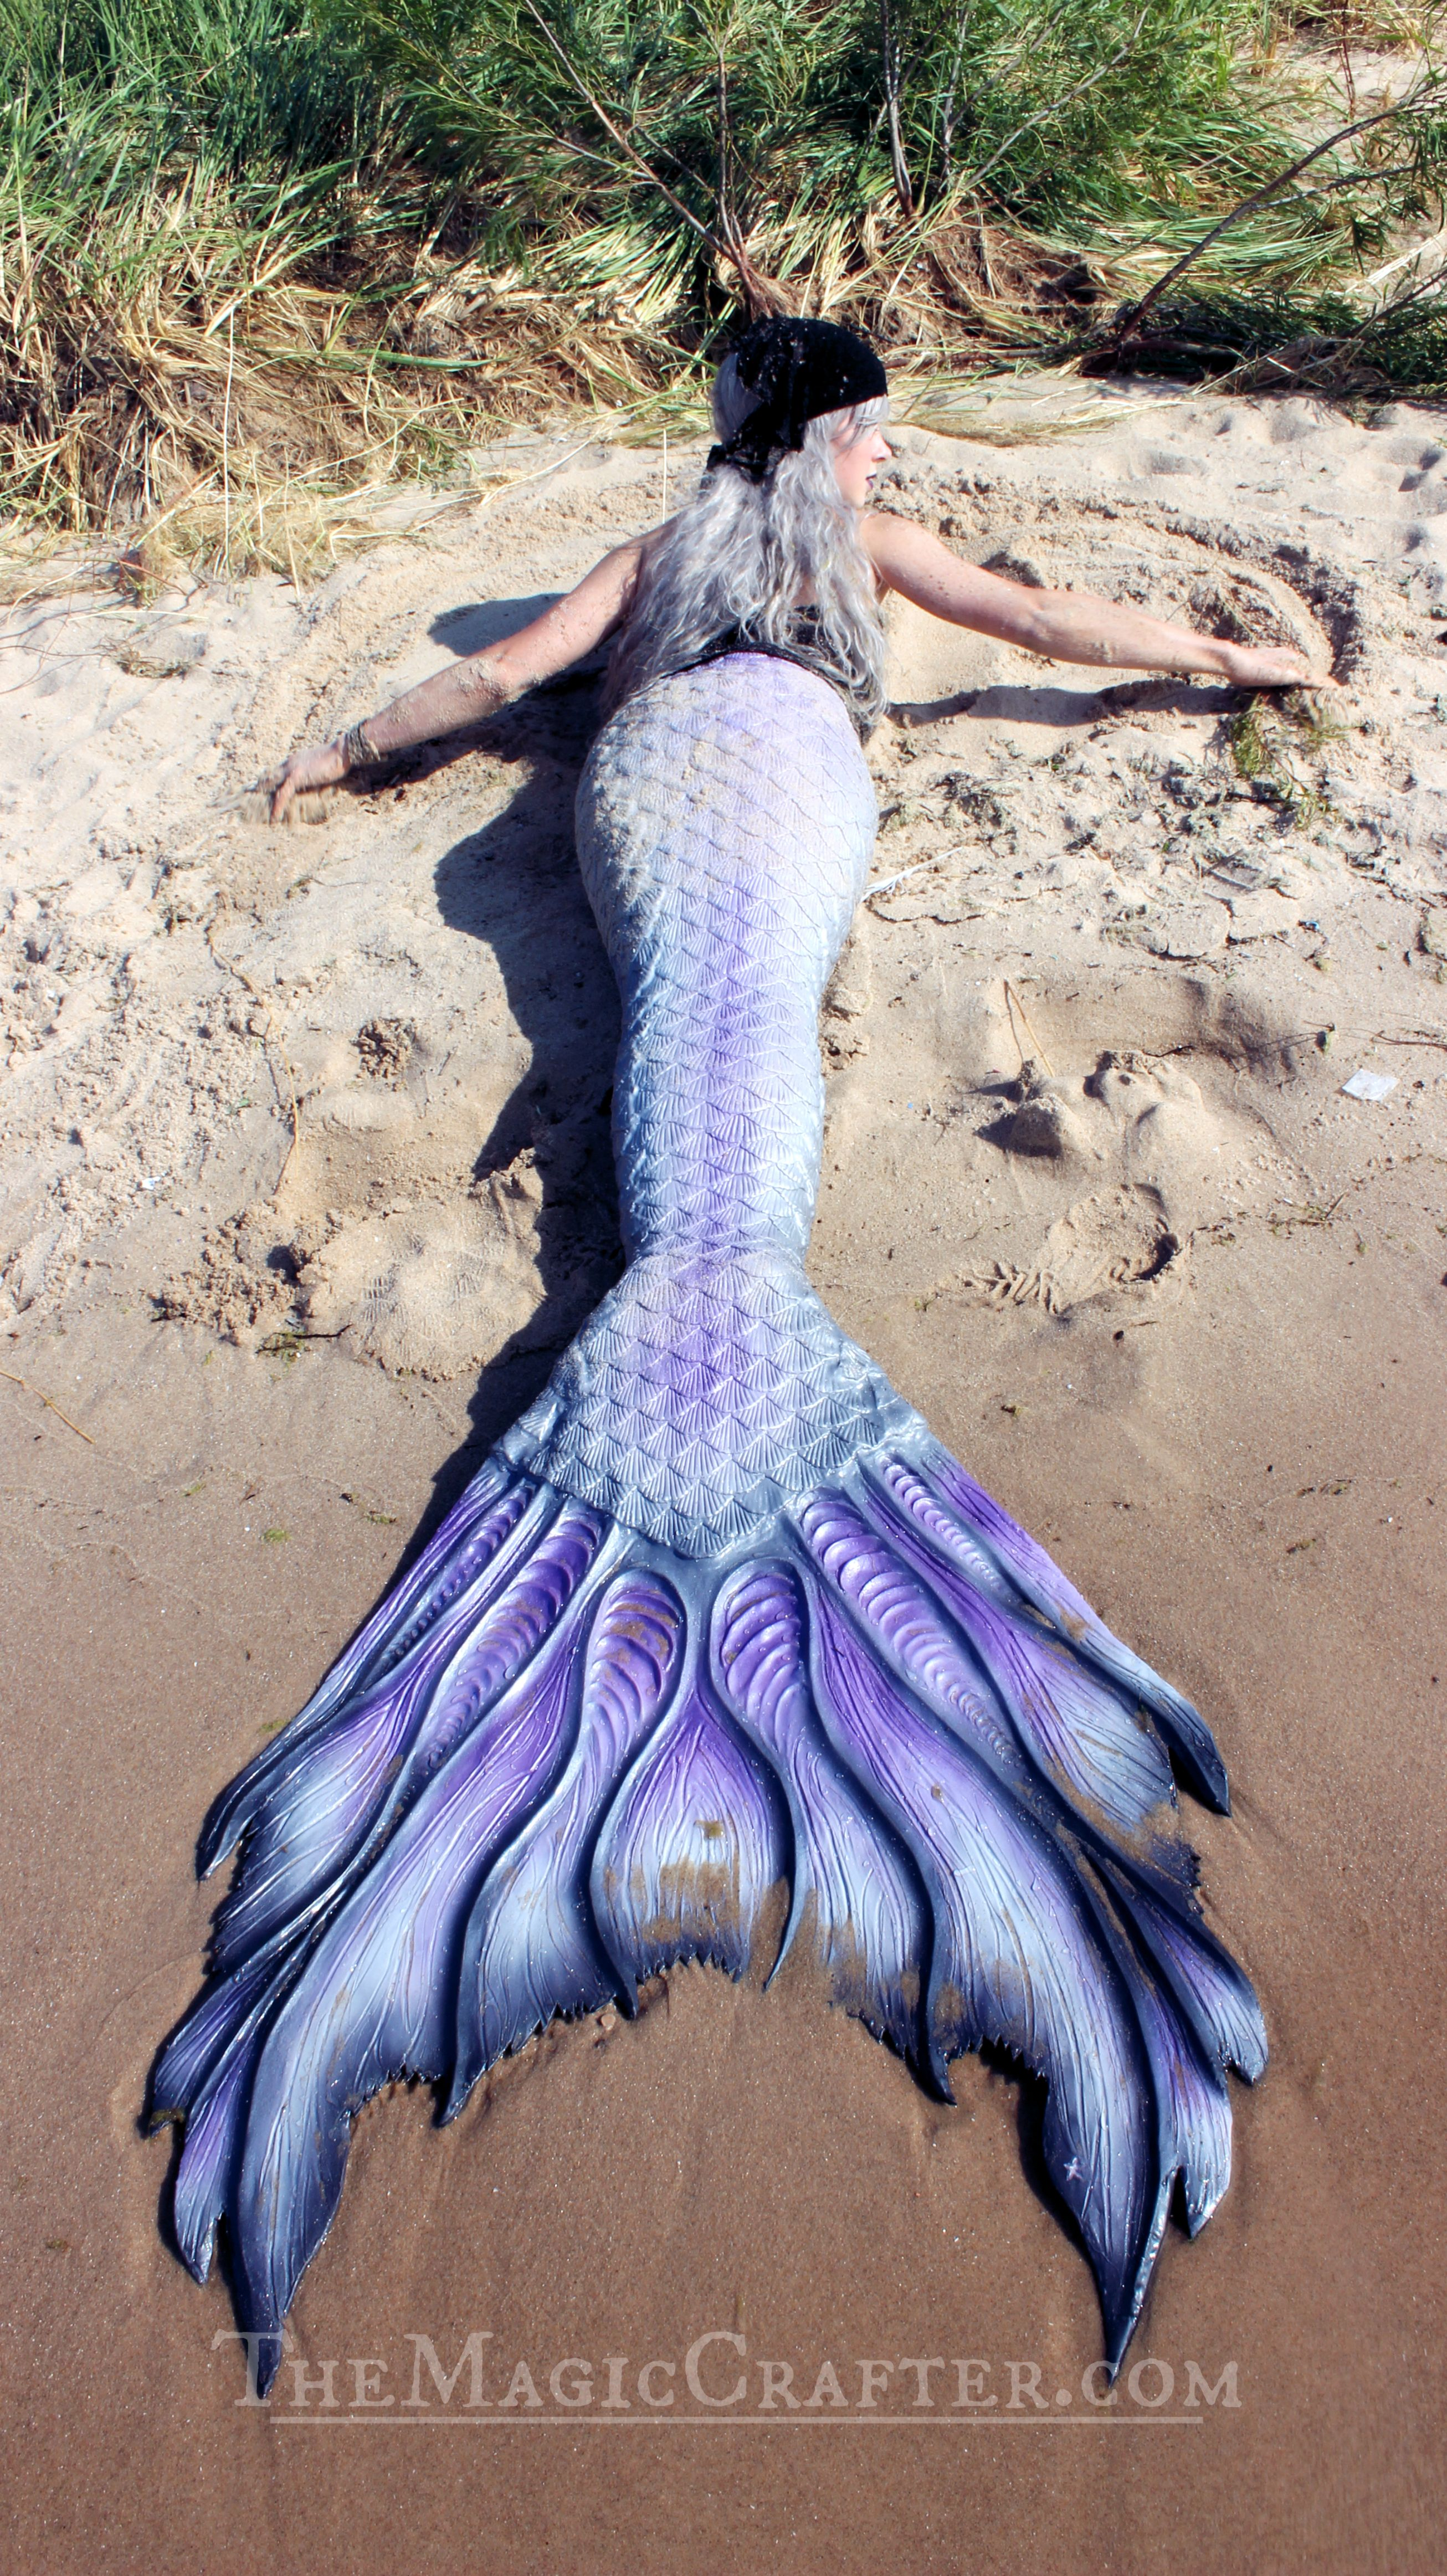 a36d015238a443 Real Life Mermaid: Click to watch Videos of mermaids swimming in the water.  This